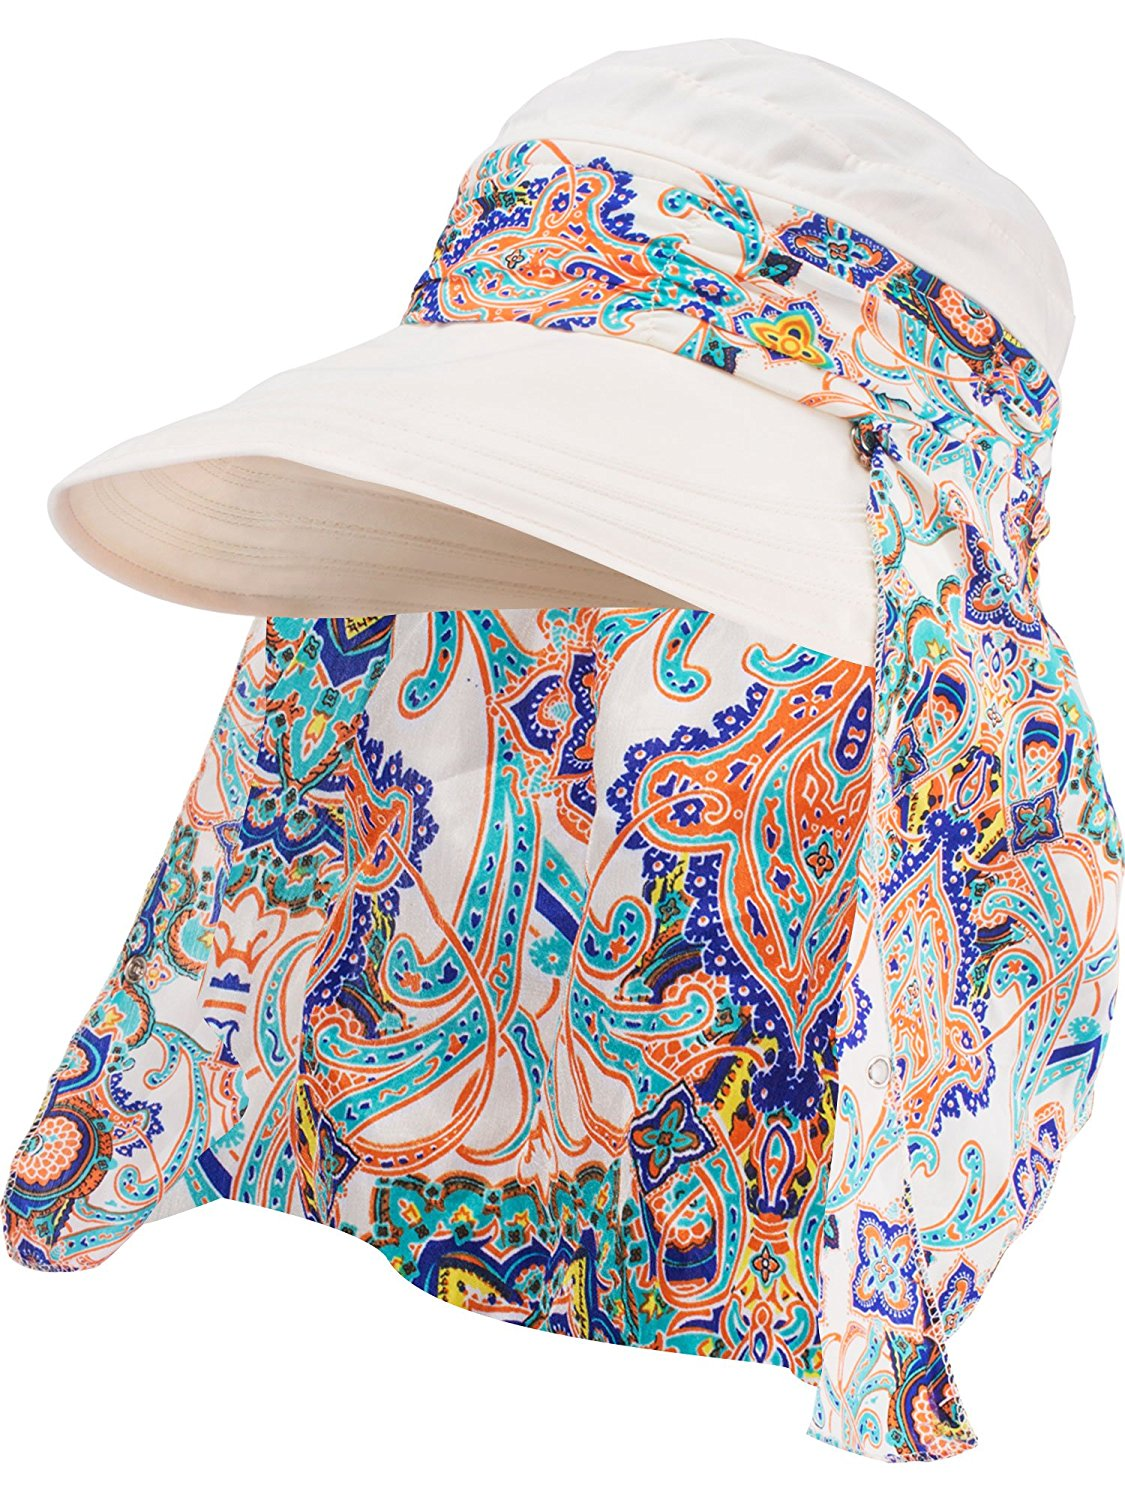 c90d0d6584c280 Get Quotations · Hestya 1 Pack Protection Summer Sun Hats Wide Brim Cap Sun  Visor Hats with Neck Protector